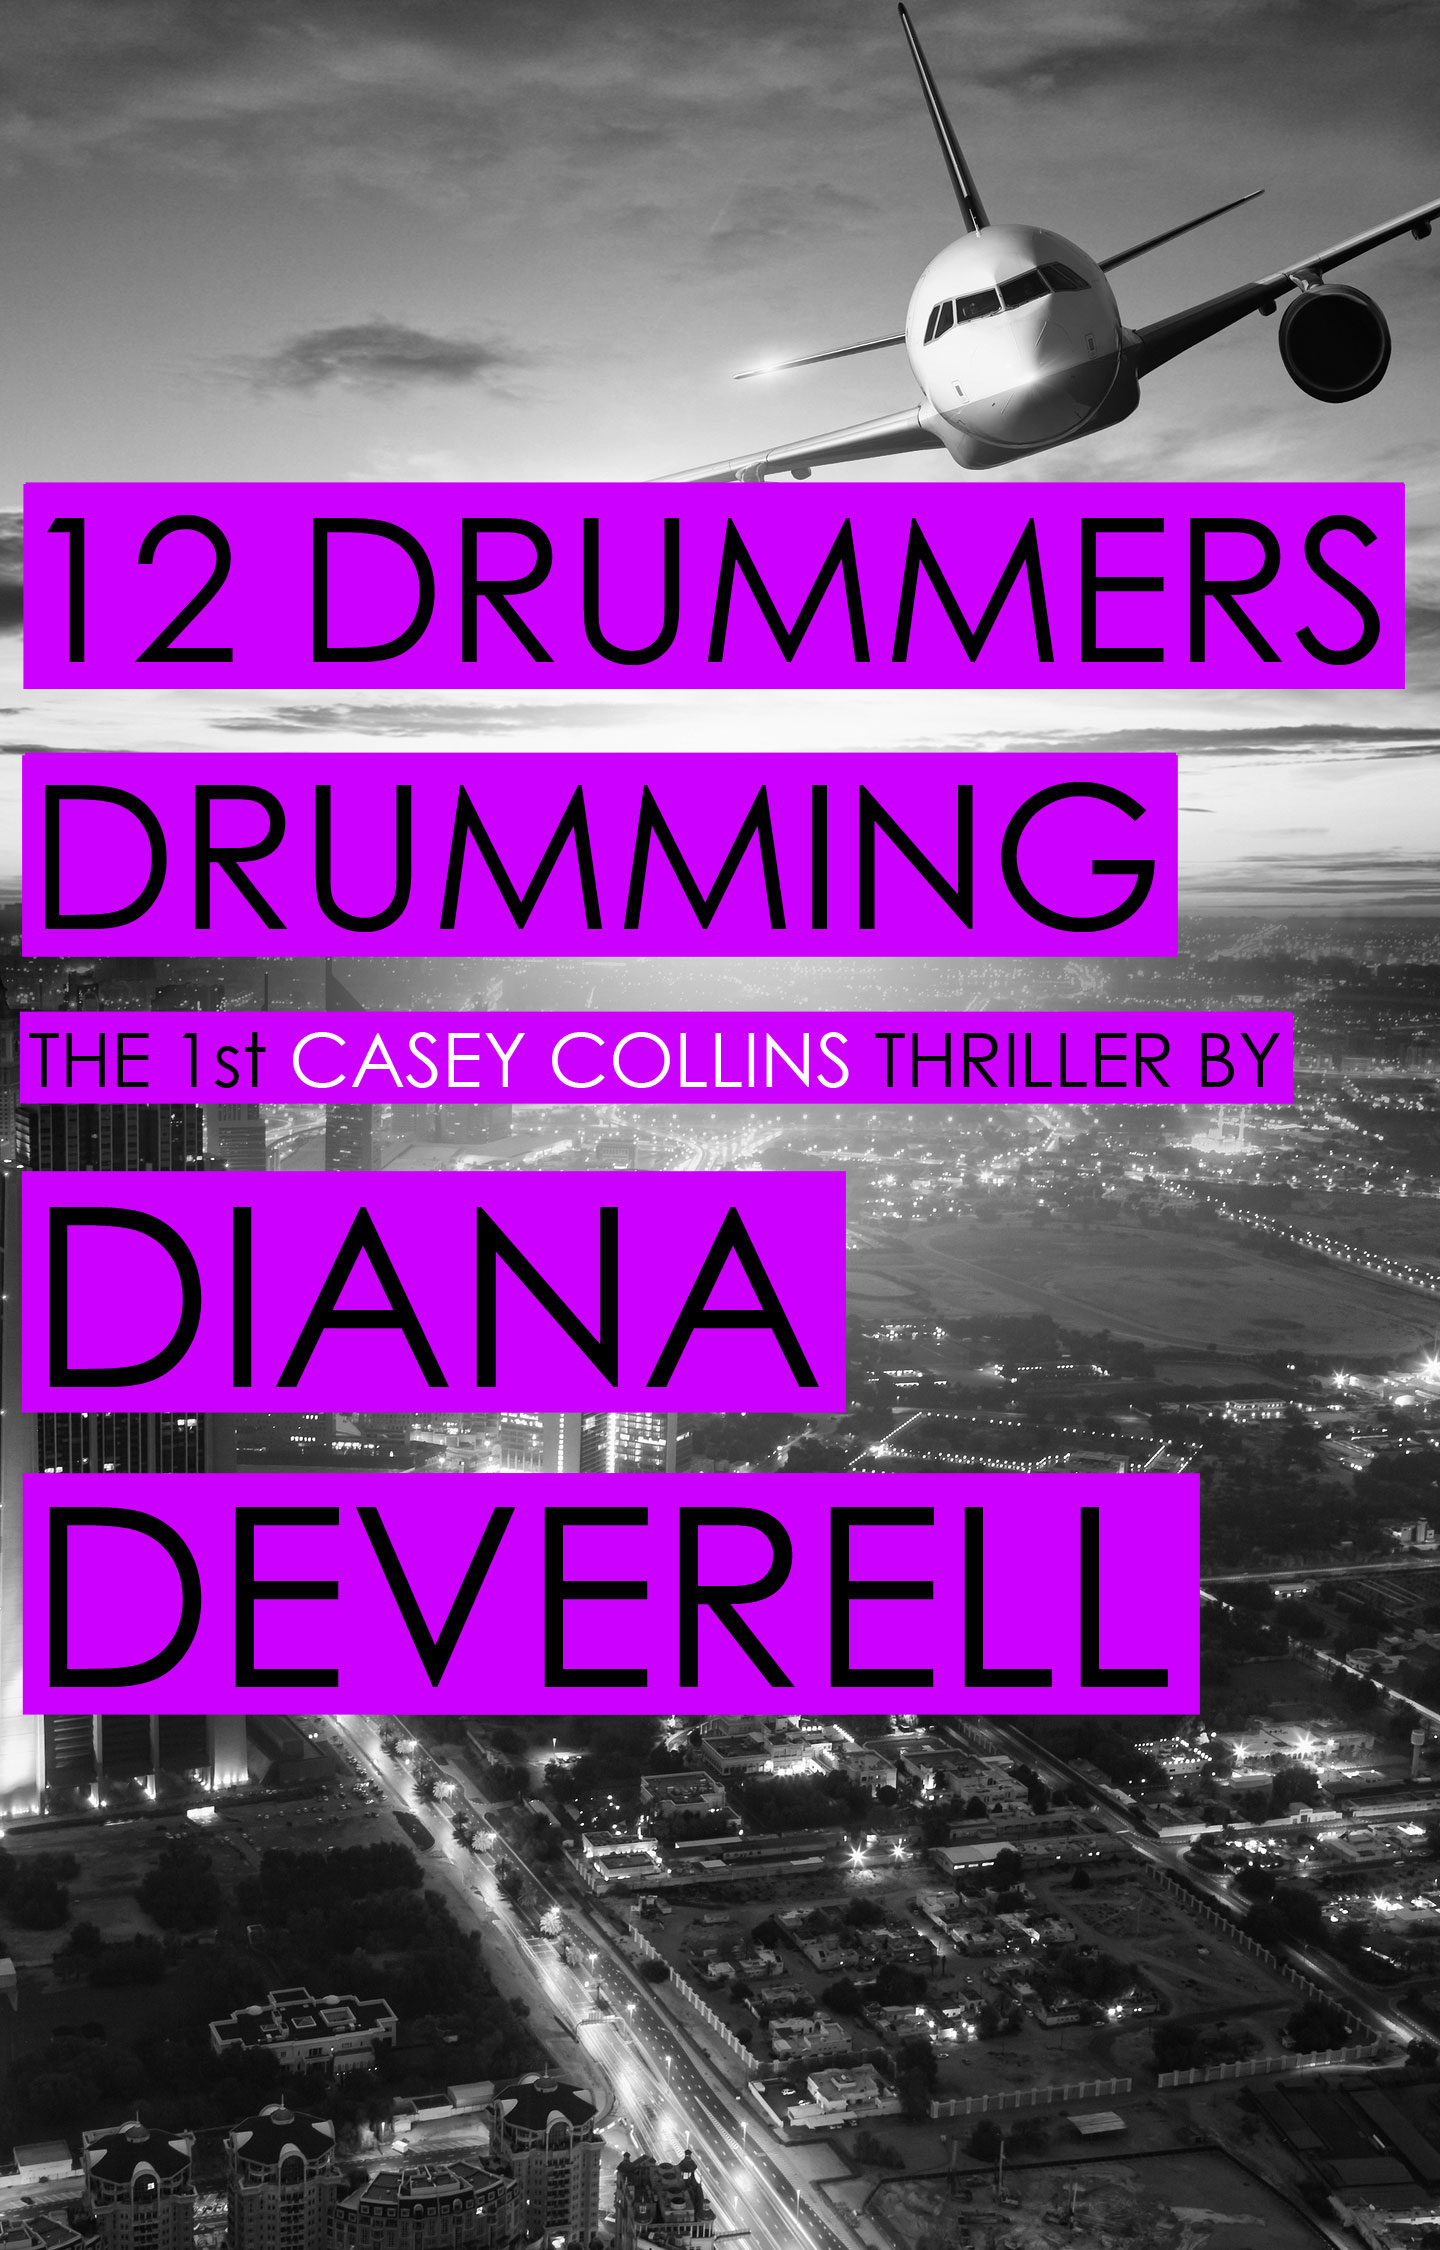 12 Drummers Drumming by Diana Deverell